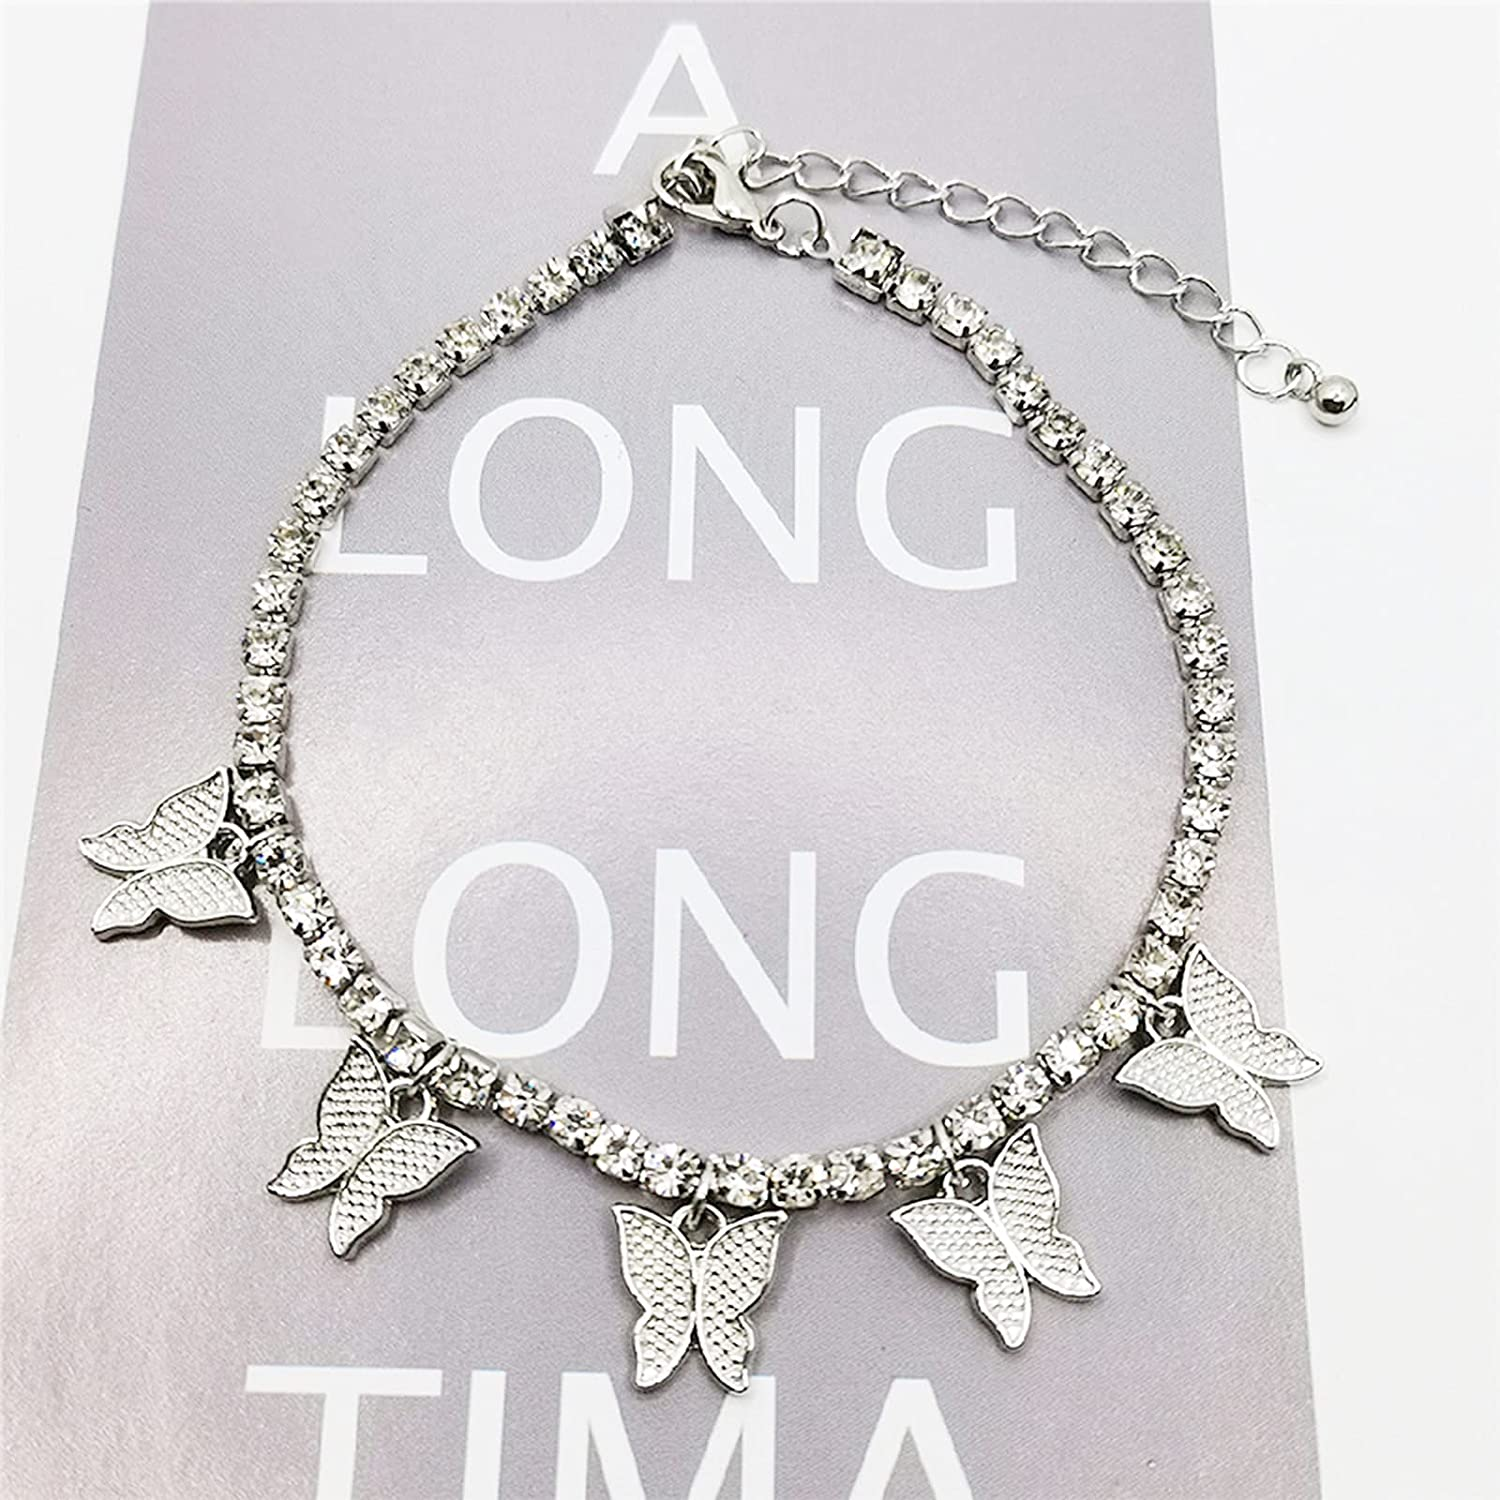 TBoxBo 5 PCS Colorful Rhinestone Butterfly Anklets Crystal Butterfly Anklets Boho Foot Chain Bracelets Female Jewelry